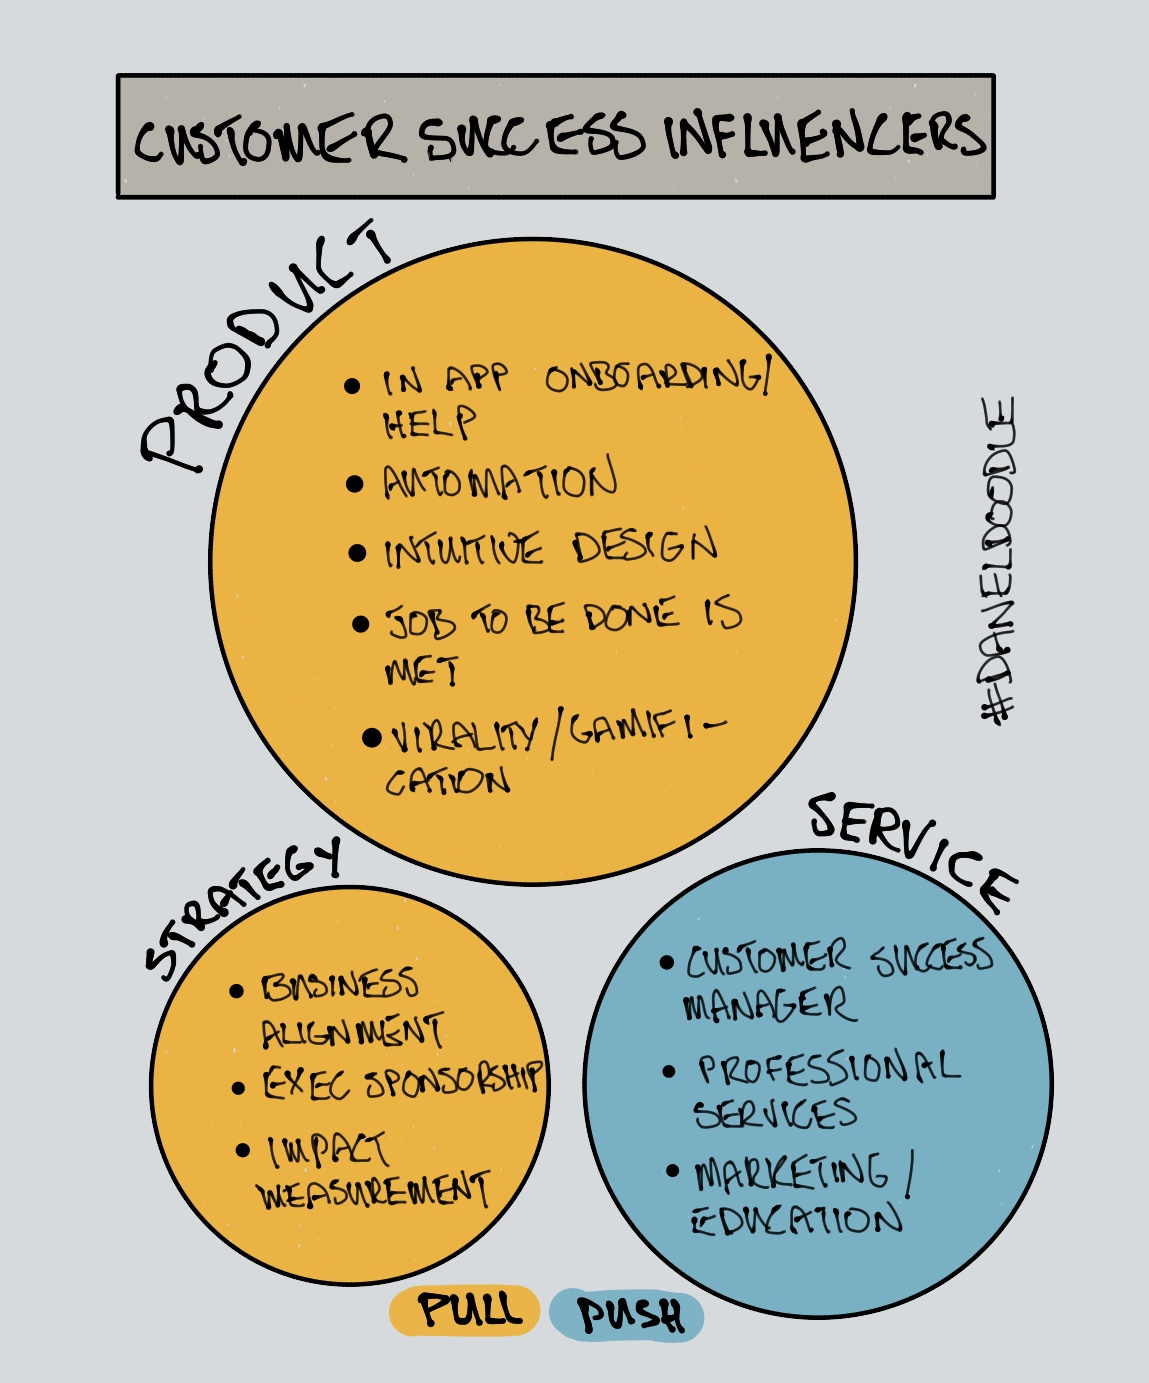 Customer Success Influencers